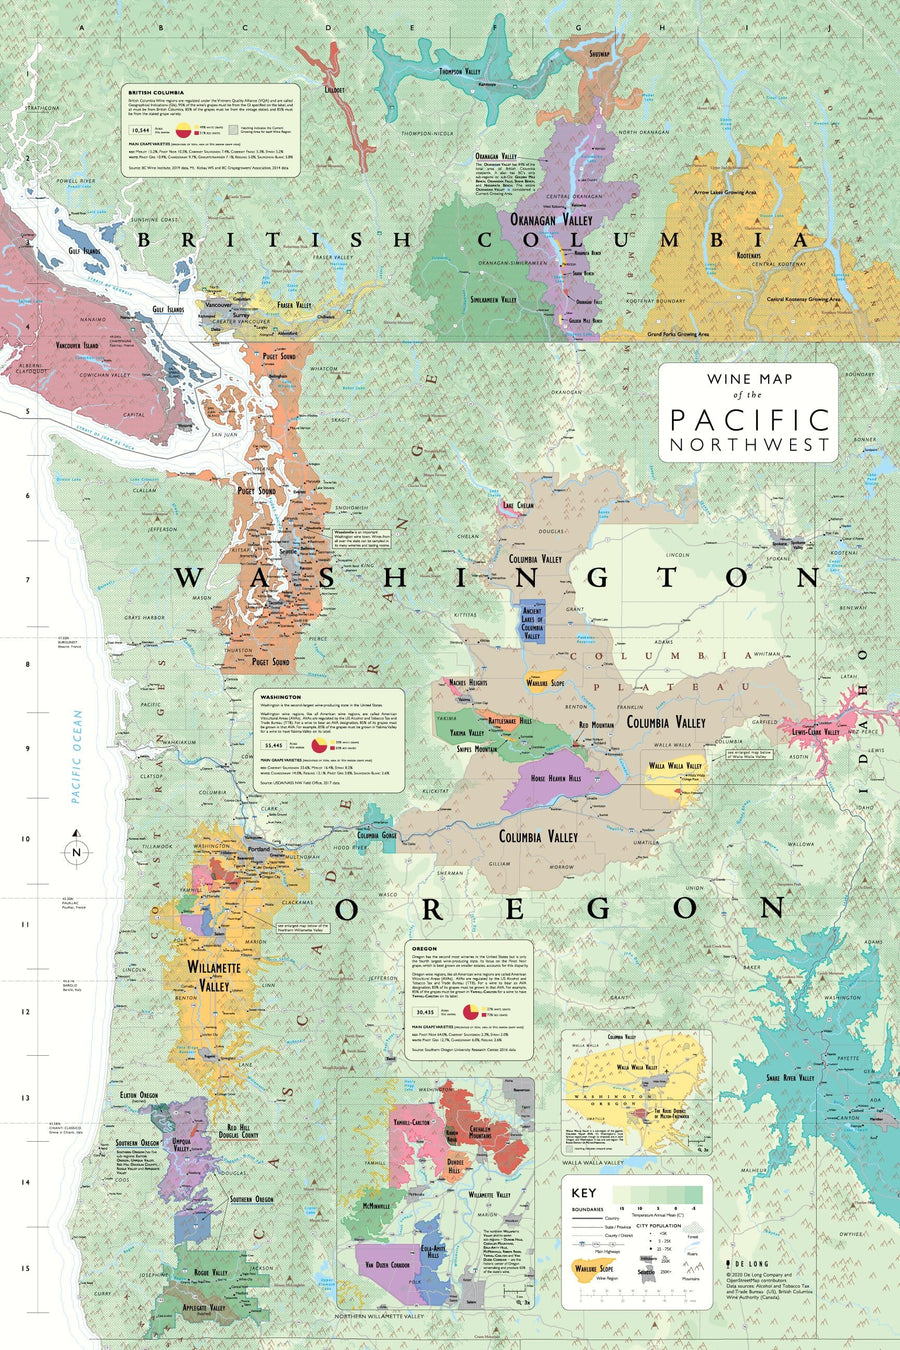 Wine Map of the Pacific Northwest (Oregon, Washington and British Columbia)